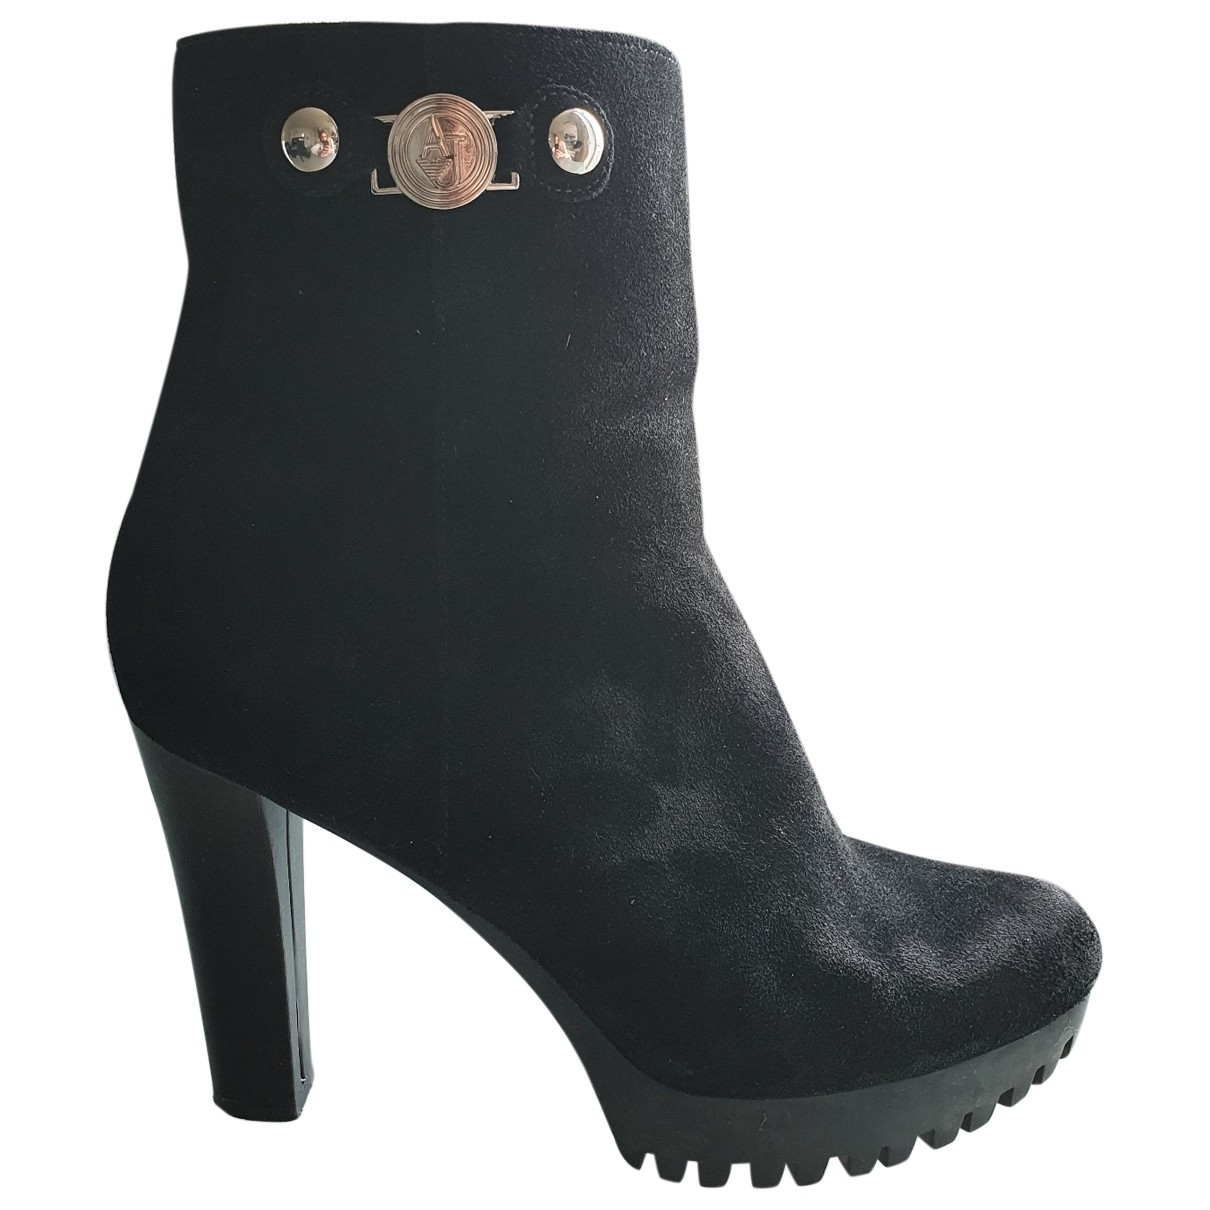 Armani Jeans \N Black Leather Ankle boots for Women 37 EU